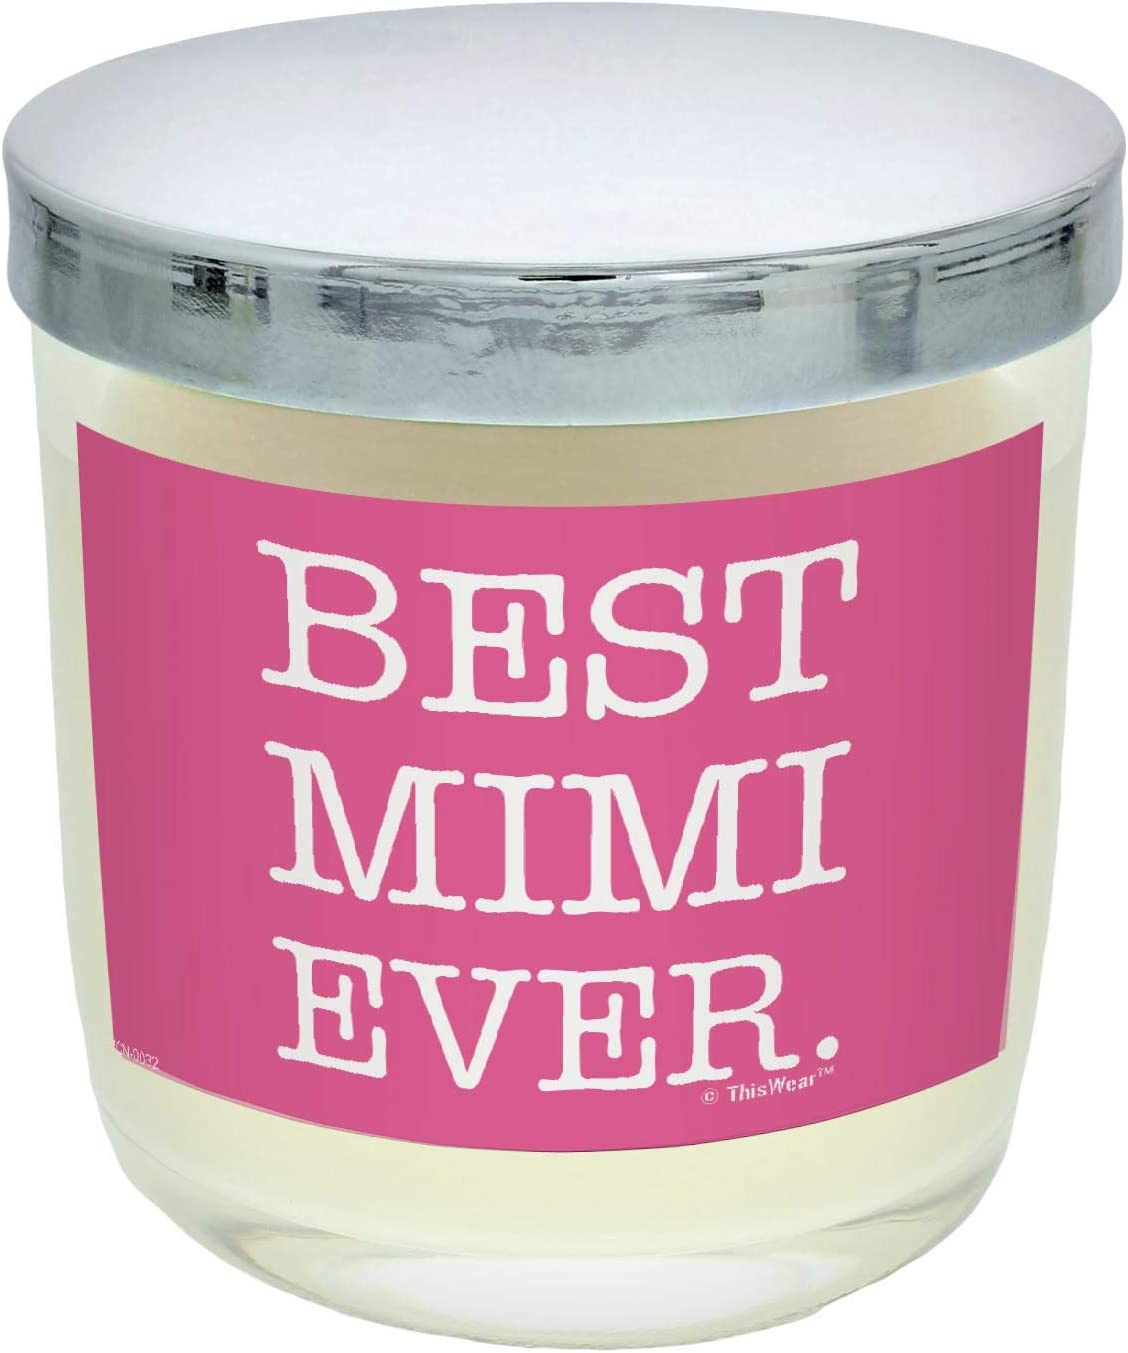 ThisWear Holiday Kitchen Decor Best Mimi Ever Pink Scented Candle Jar Vanilla